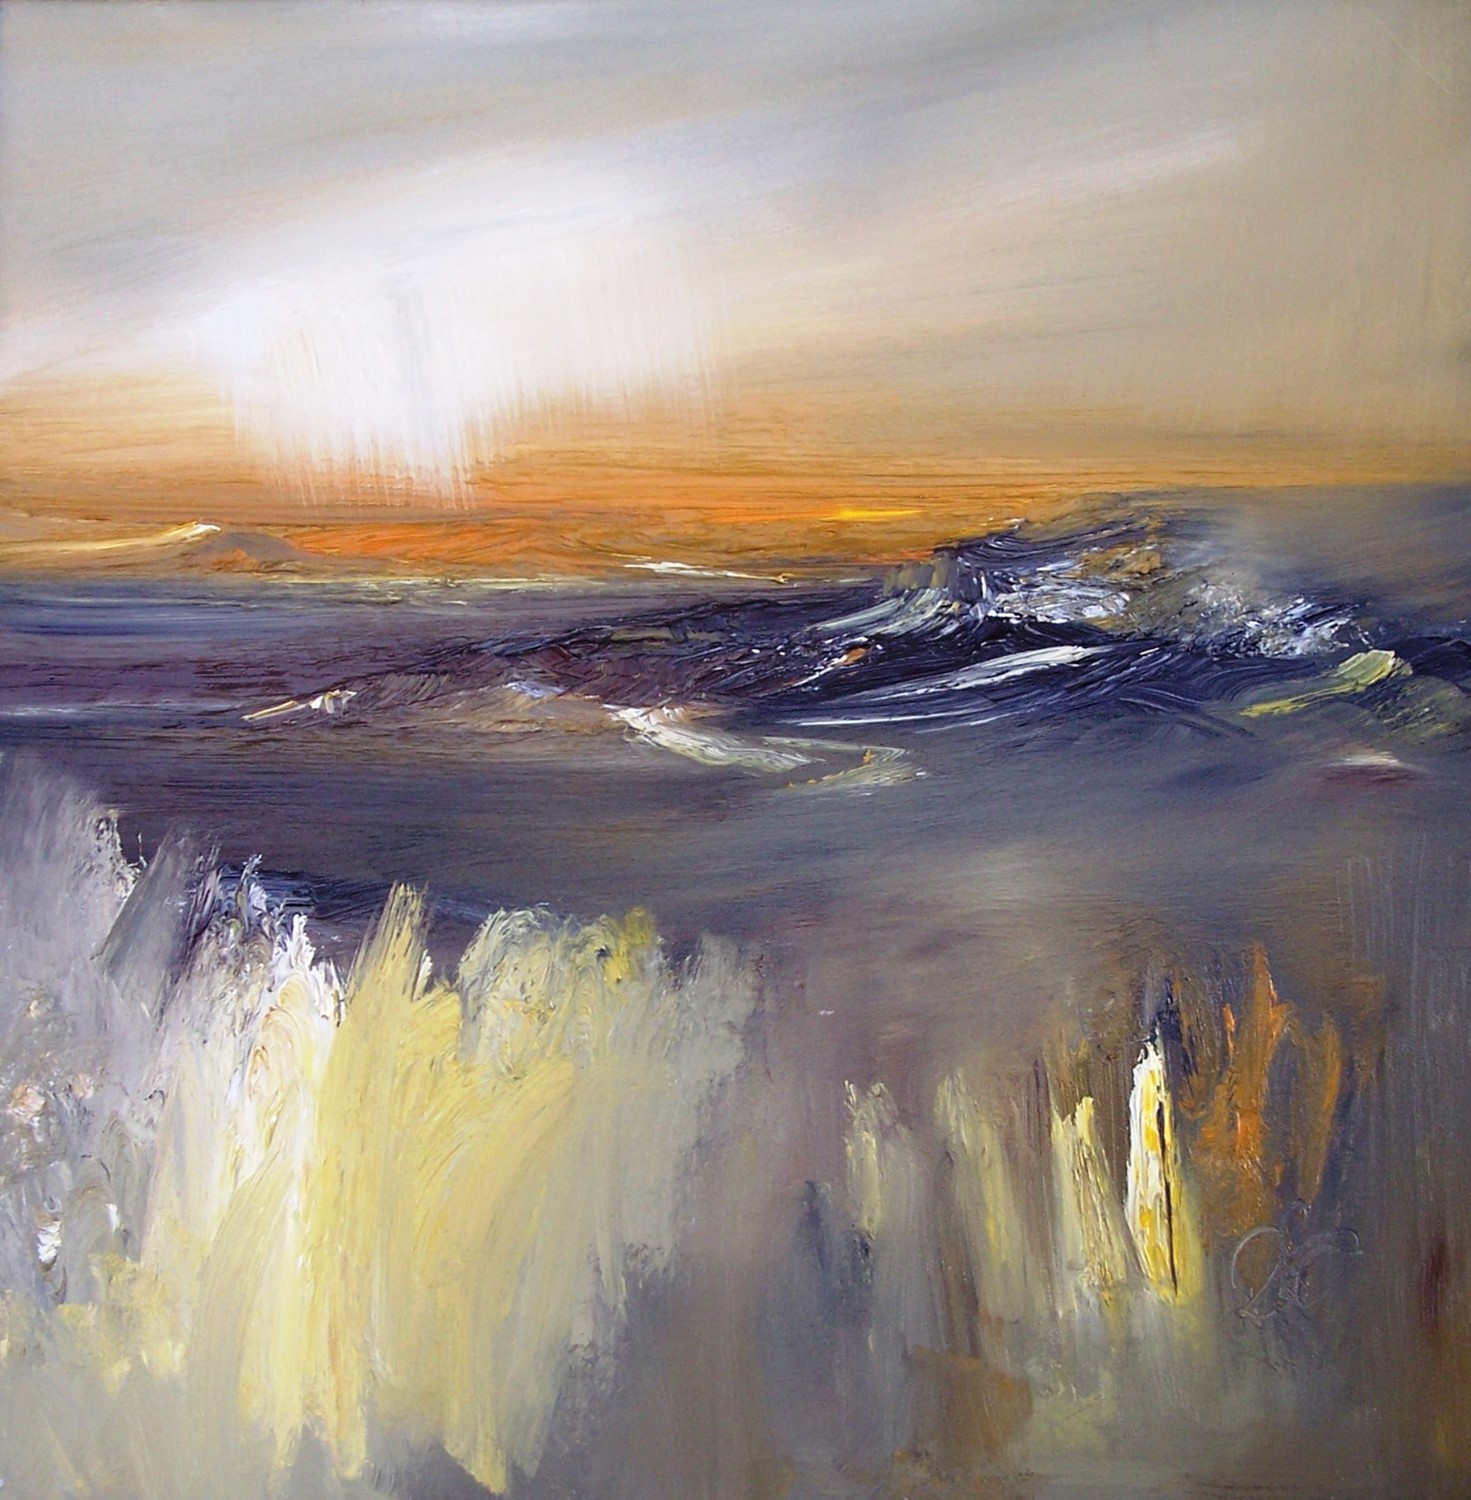 'Northern Cliffs' by artist Rosanne Barr